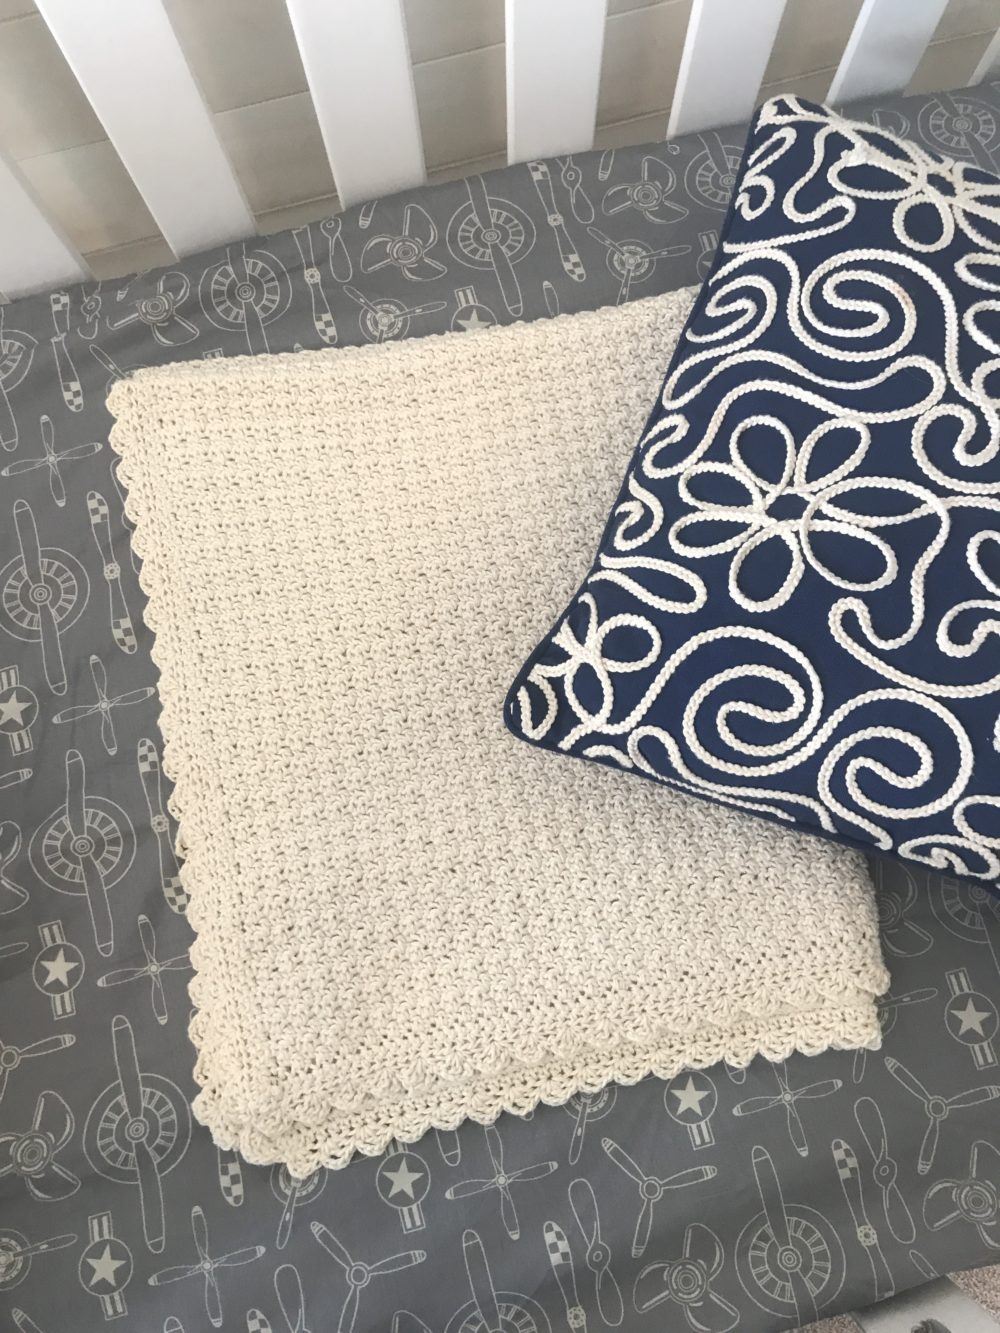 Baby Blanket Crochet Pattern By Little Monkeys Designs